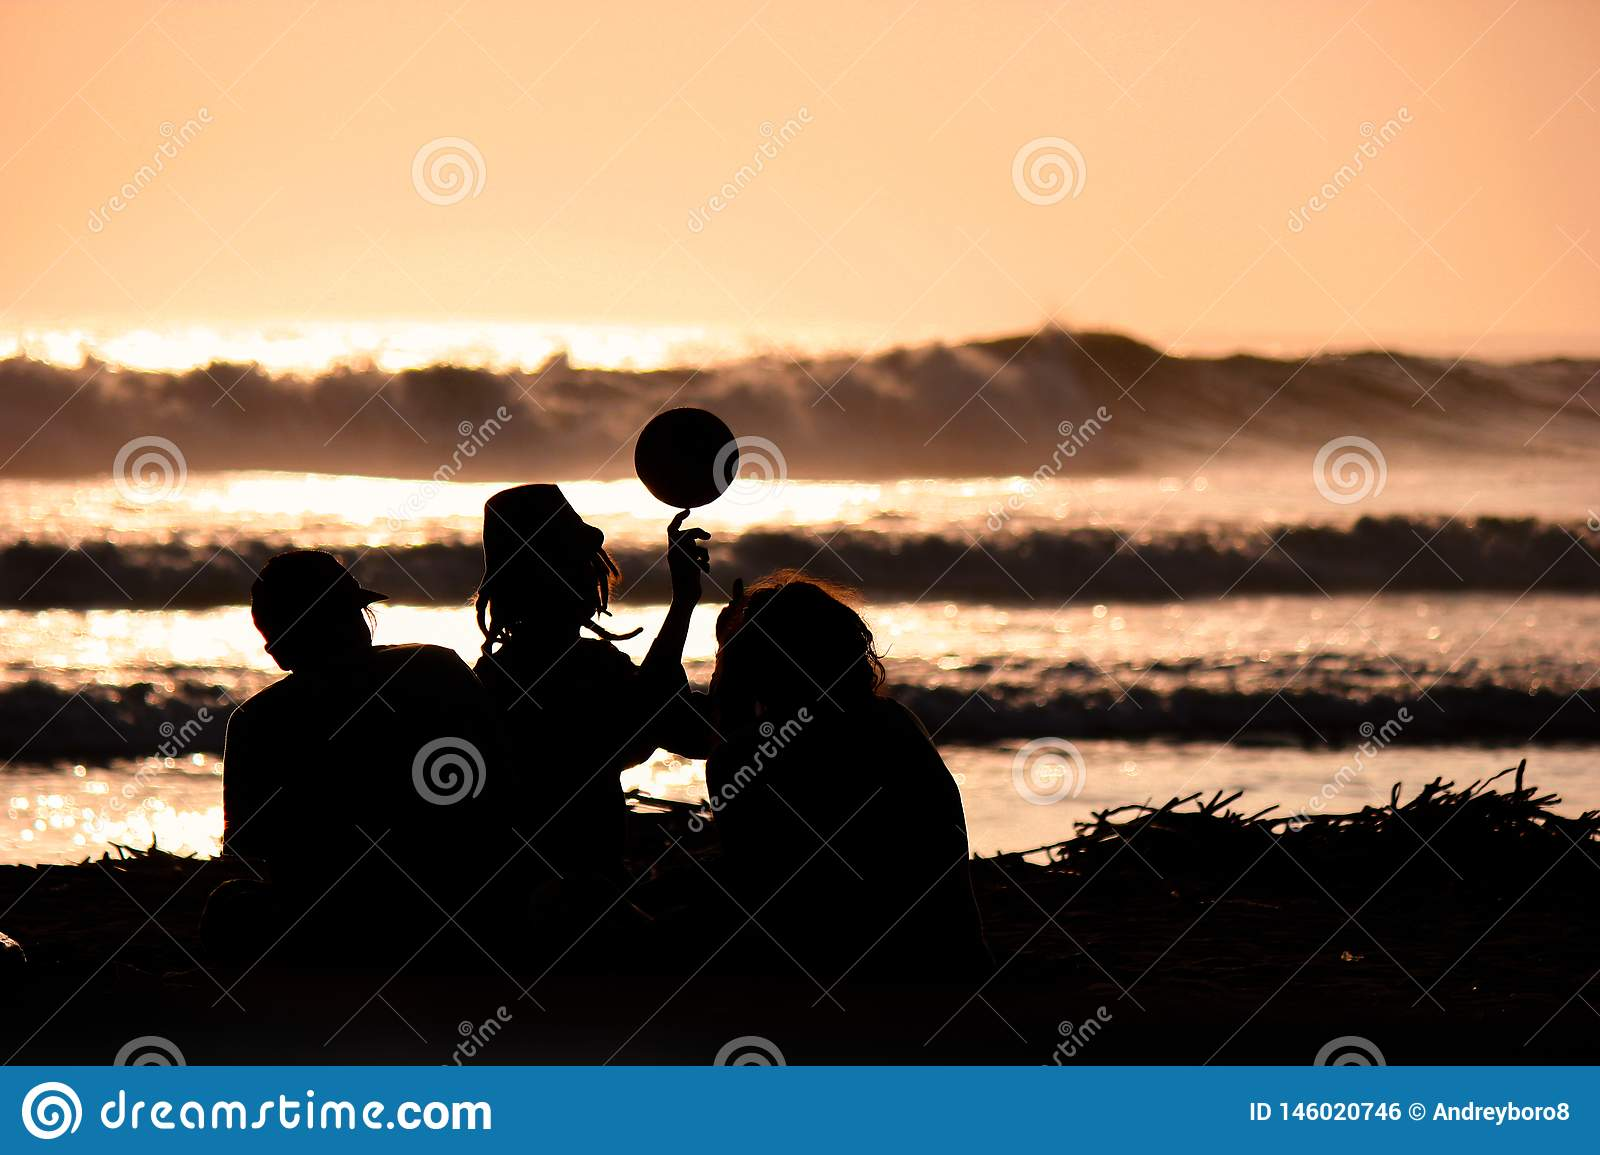 Silhouette of young friends playing with a ball on the beach on sunset